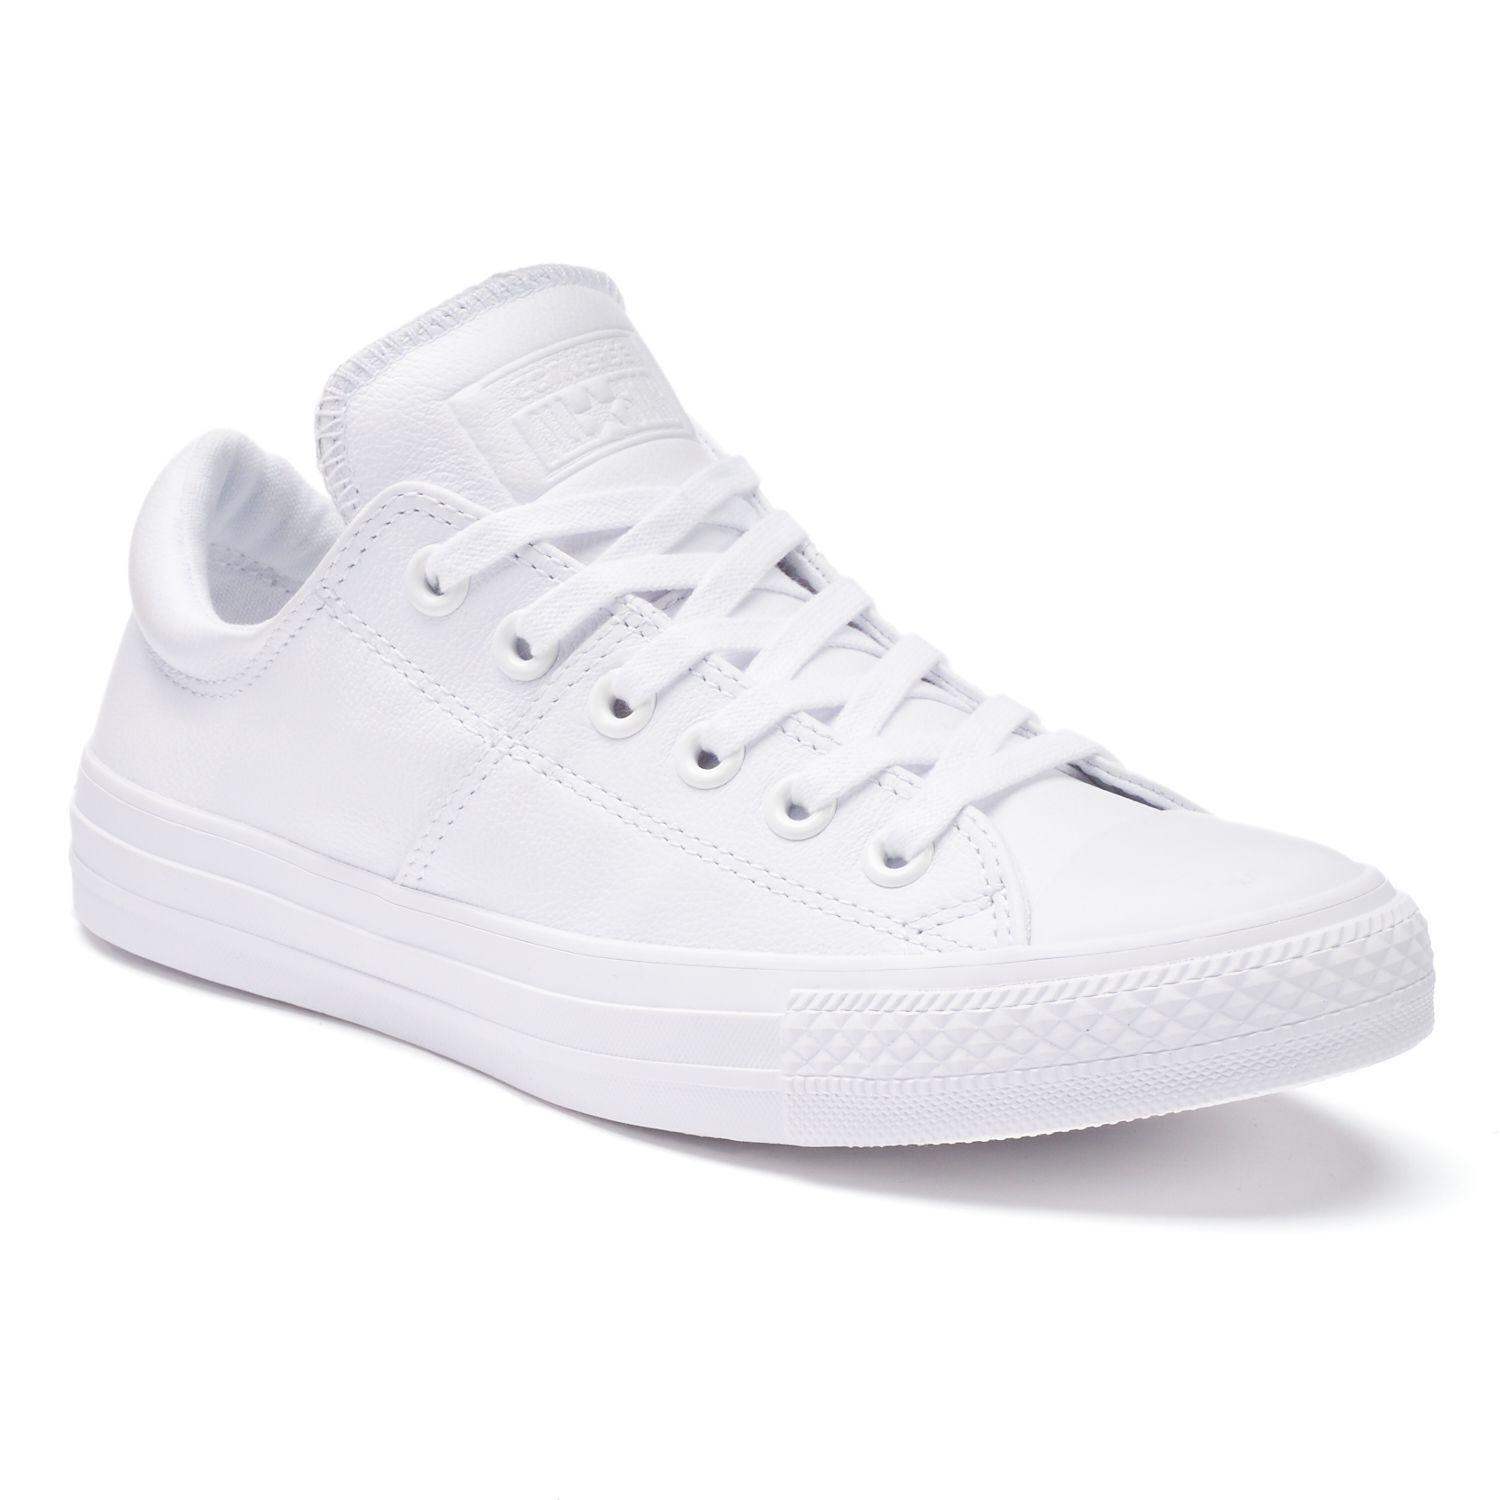 White Low Top Shoes